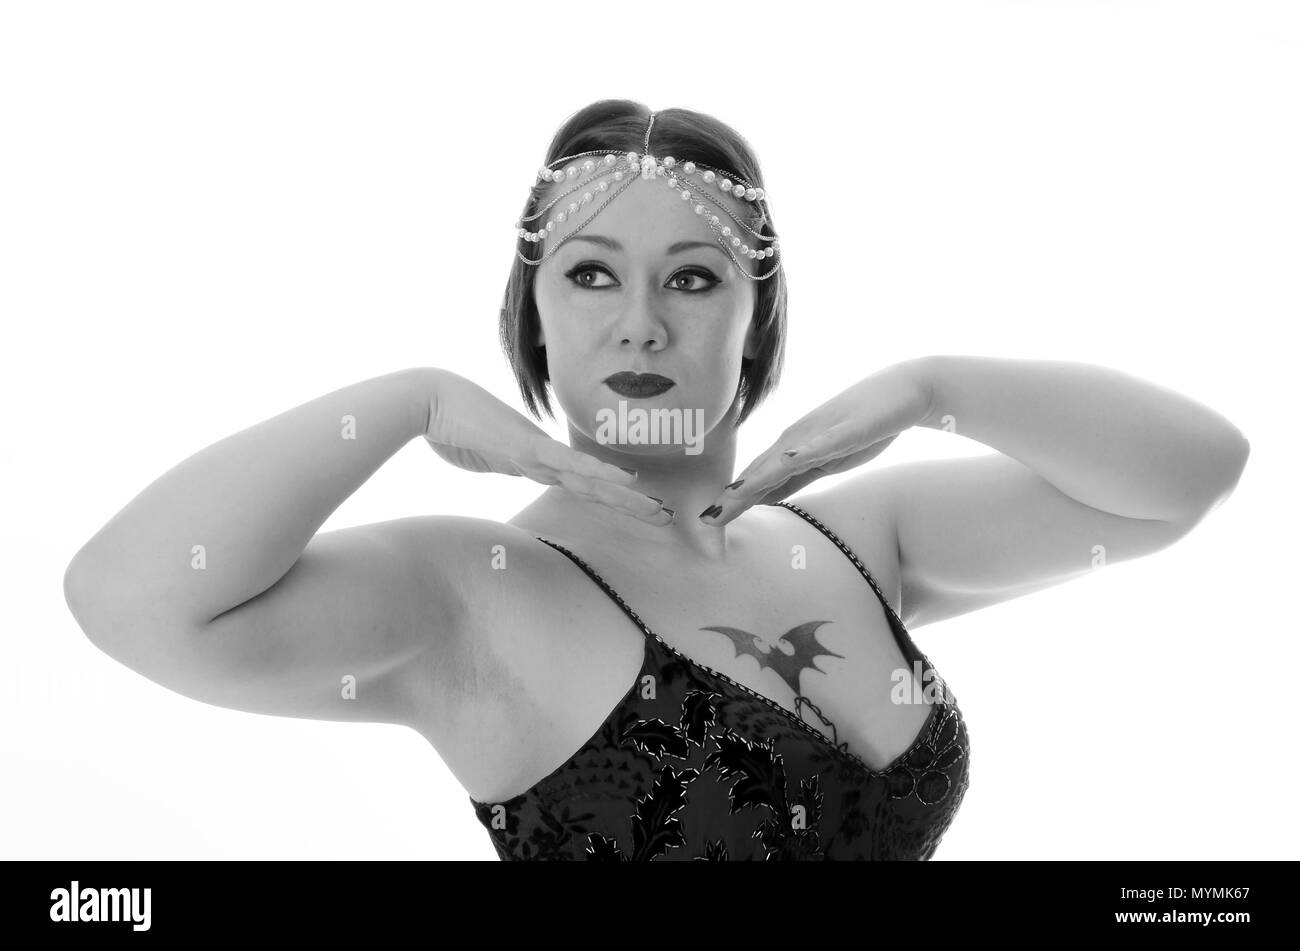 1920s flapper girl - Stock Image